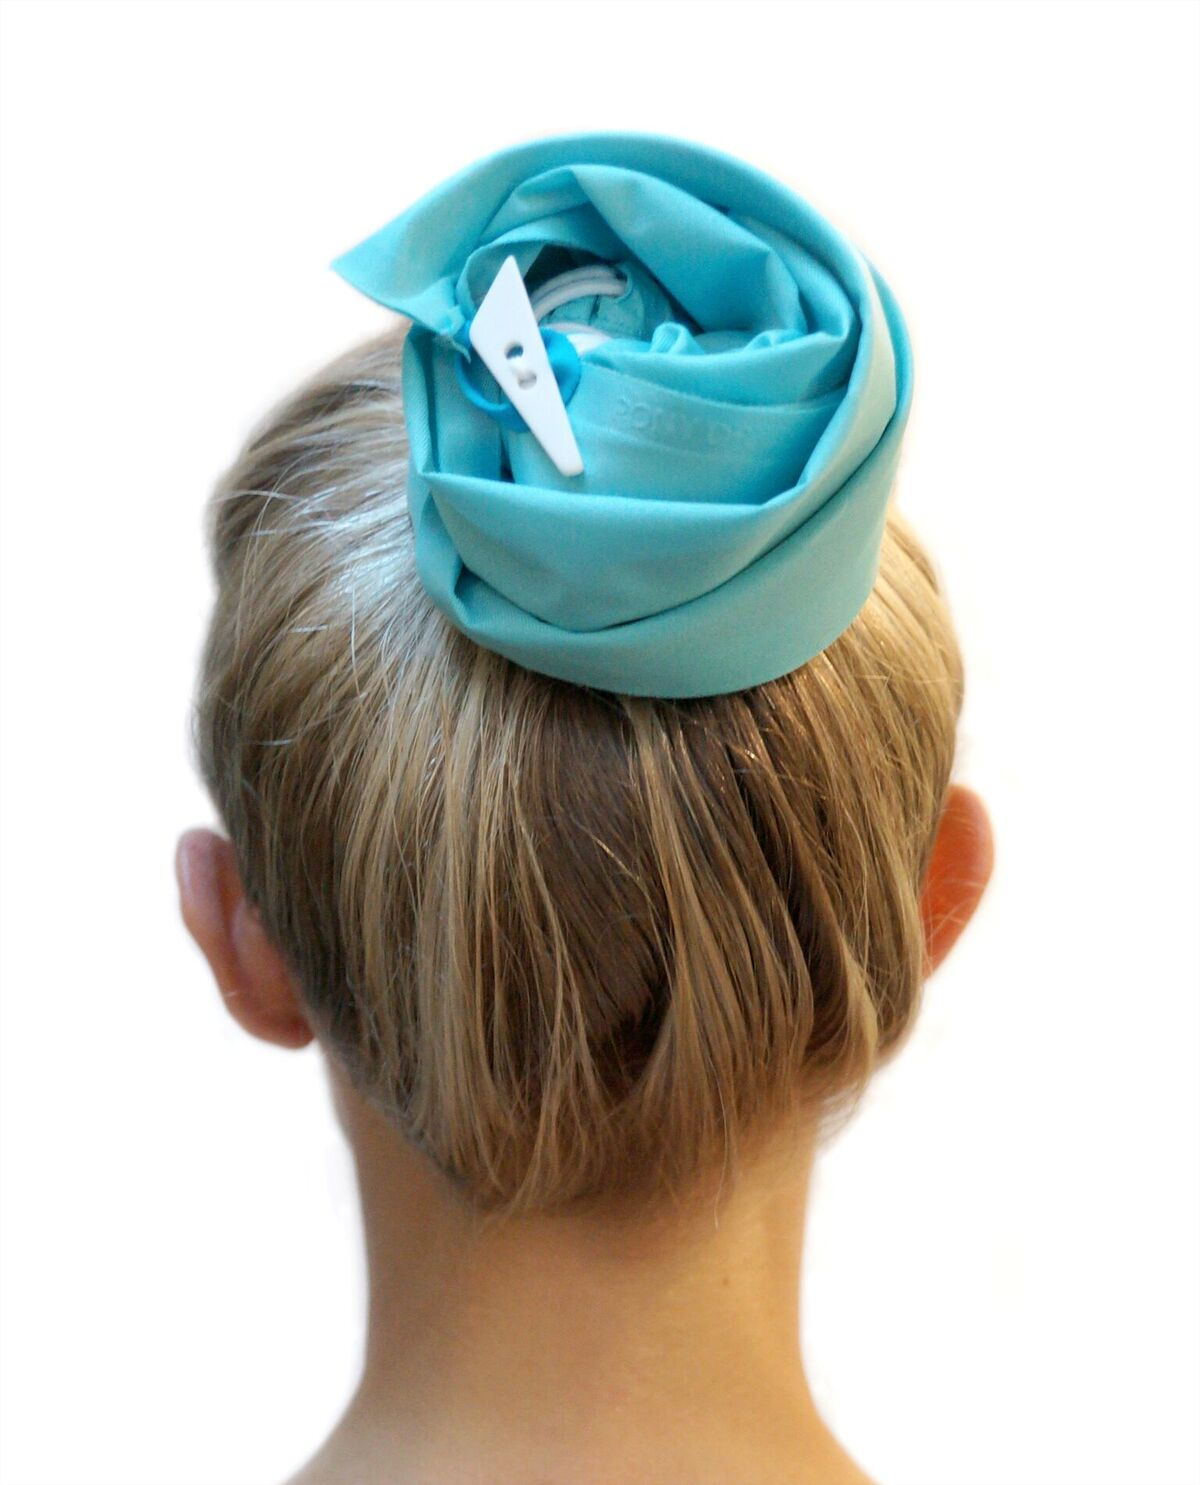 PonyDry Waterproof Hair Sleeve in Turquoise